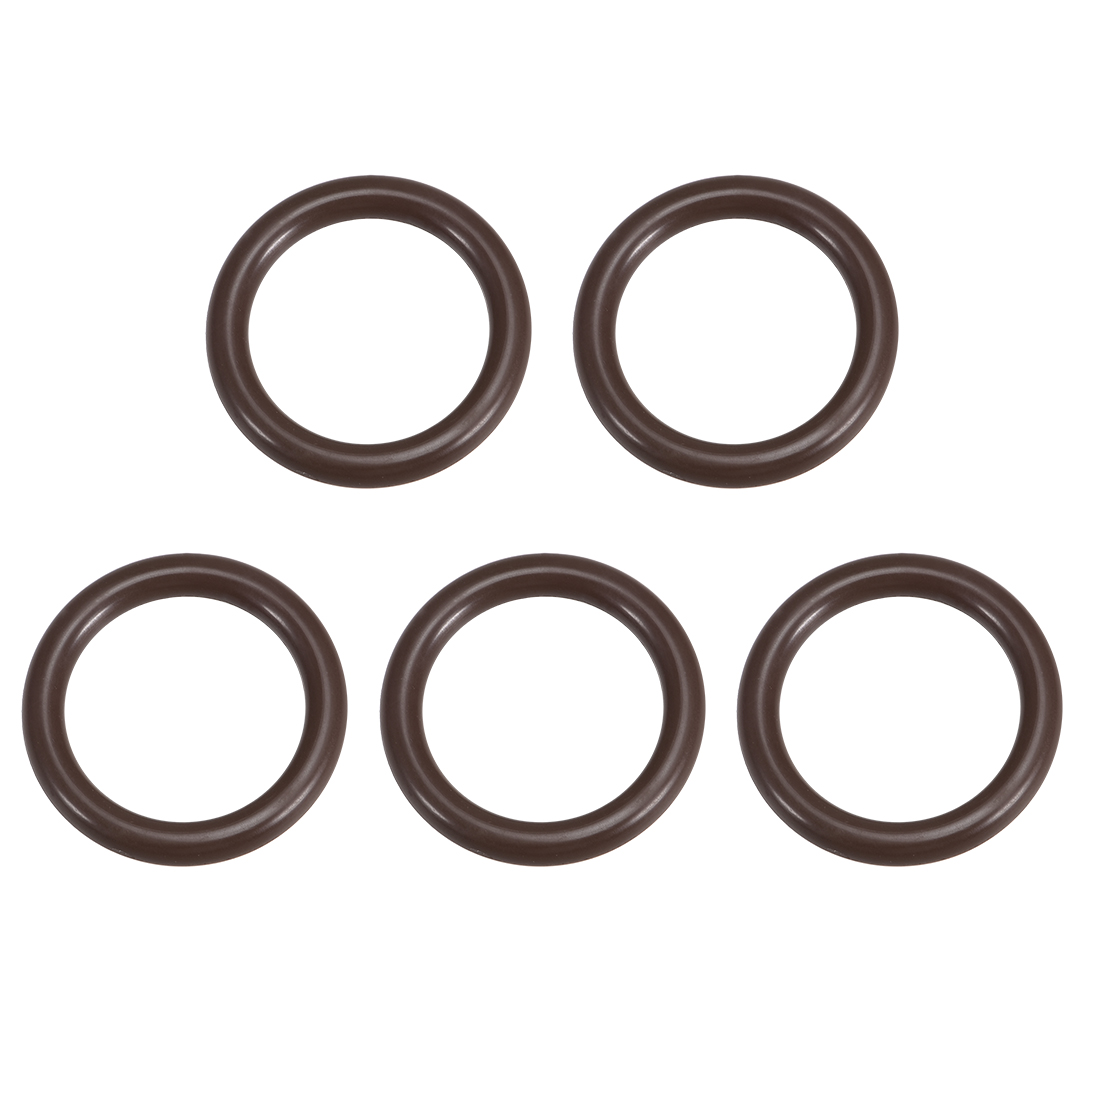 5 Pcs Fluororubber Gasket Sanitary Clamp Washer 39mm x 28.4mm O-Ring